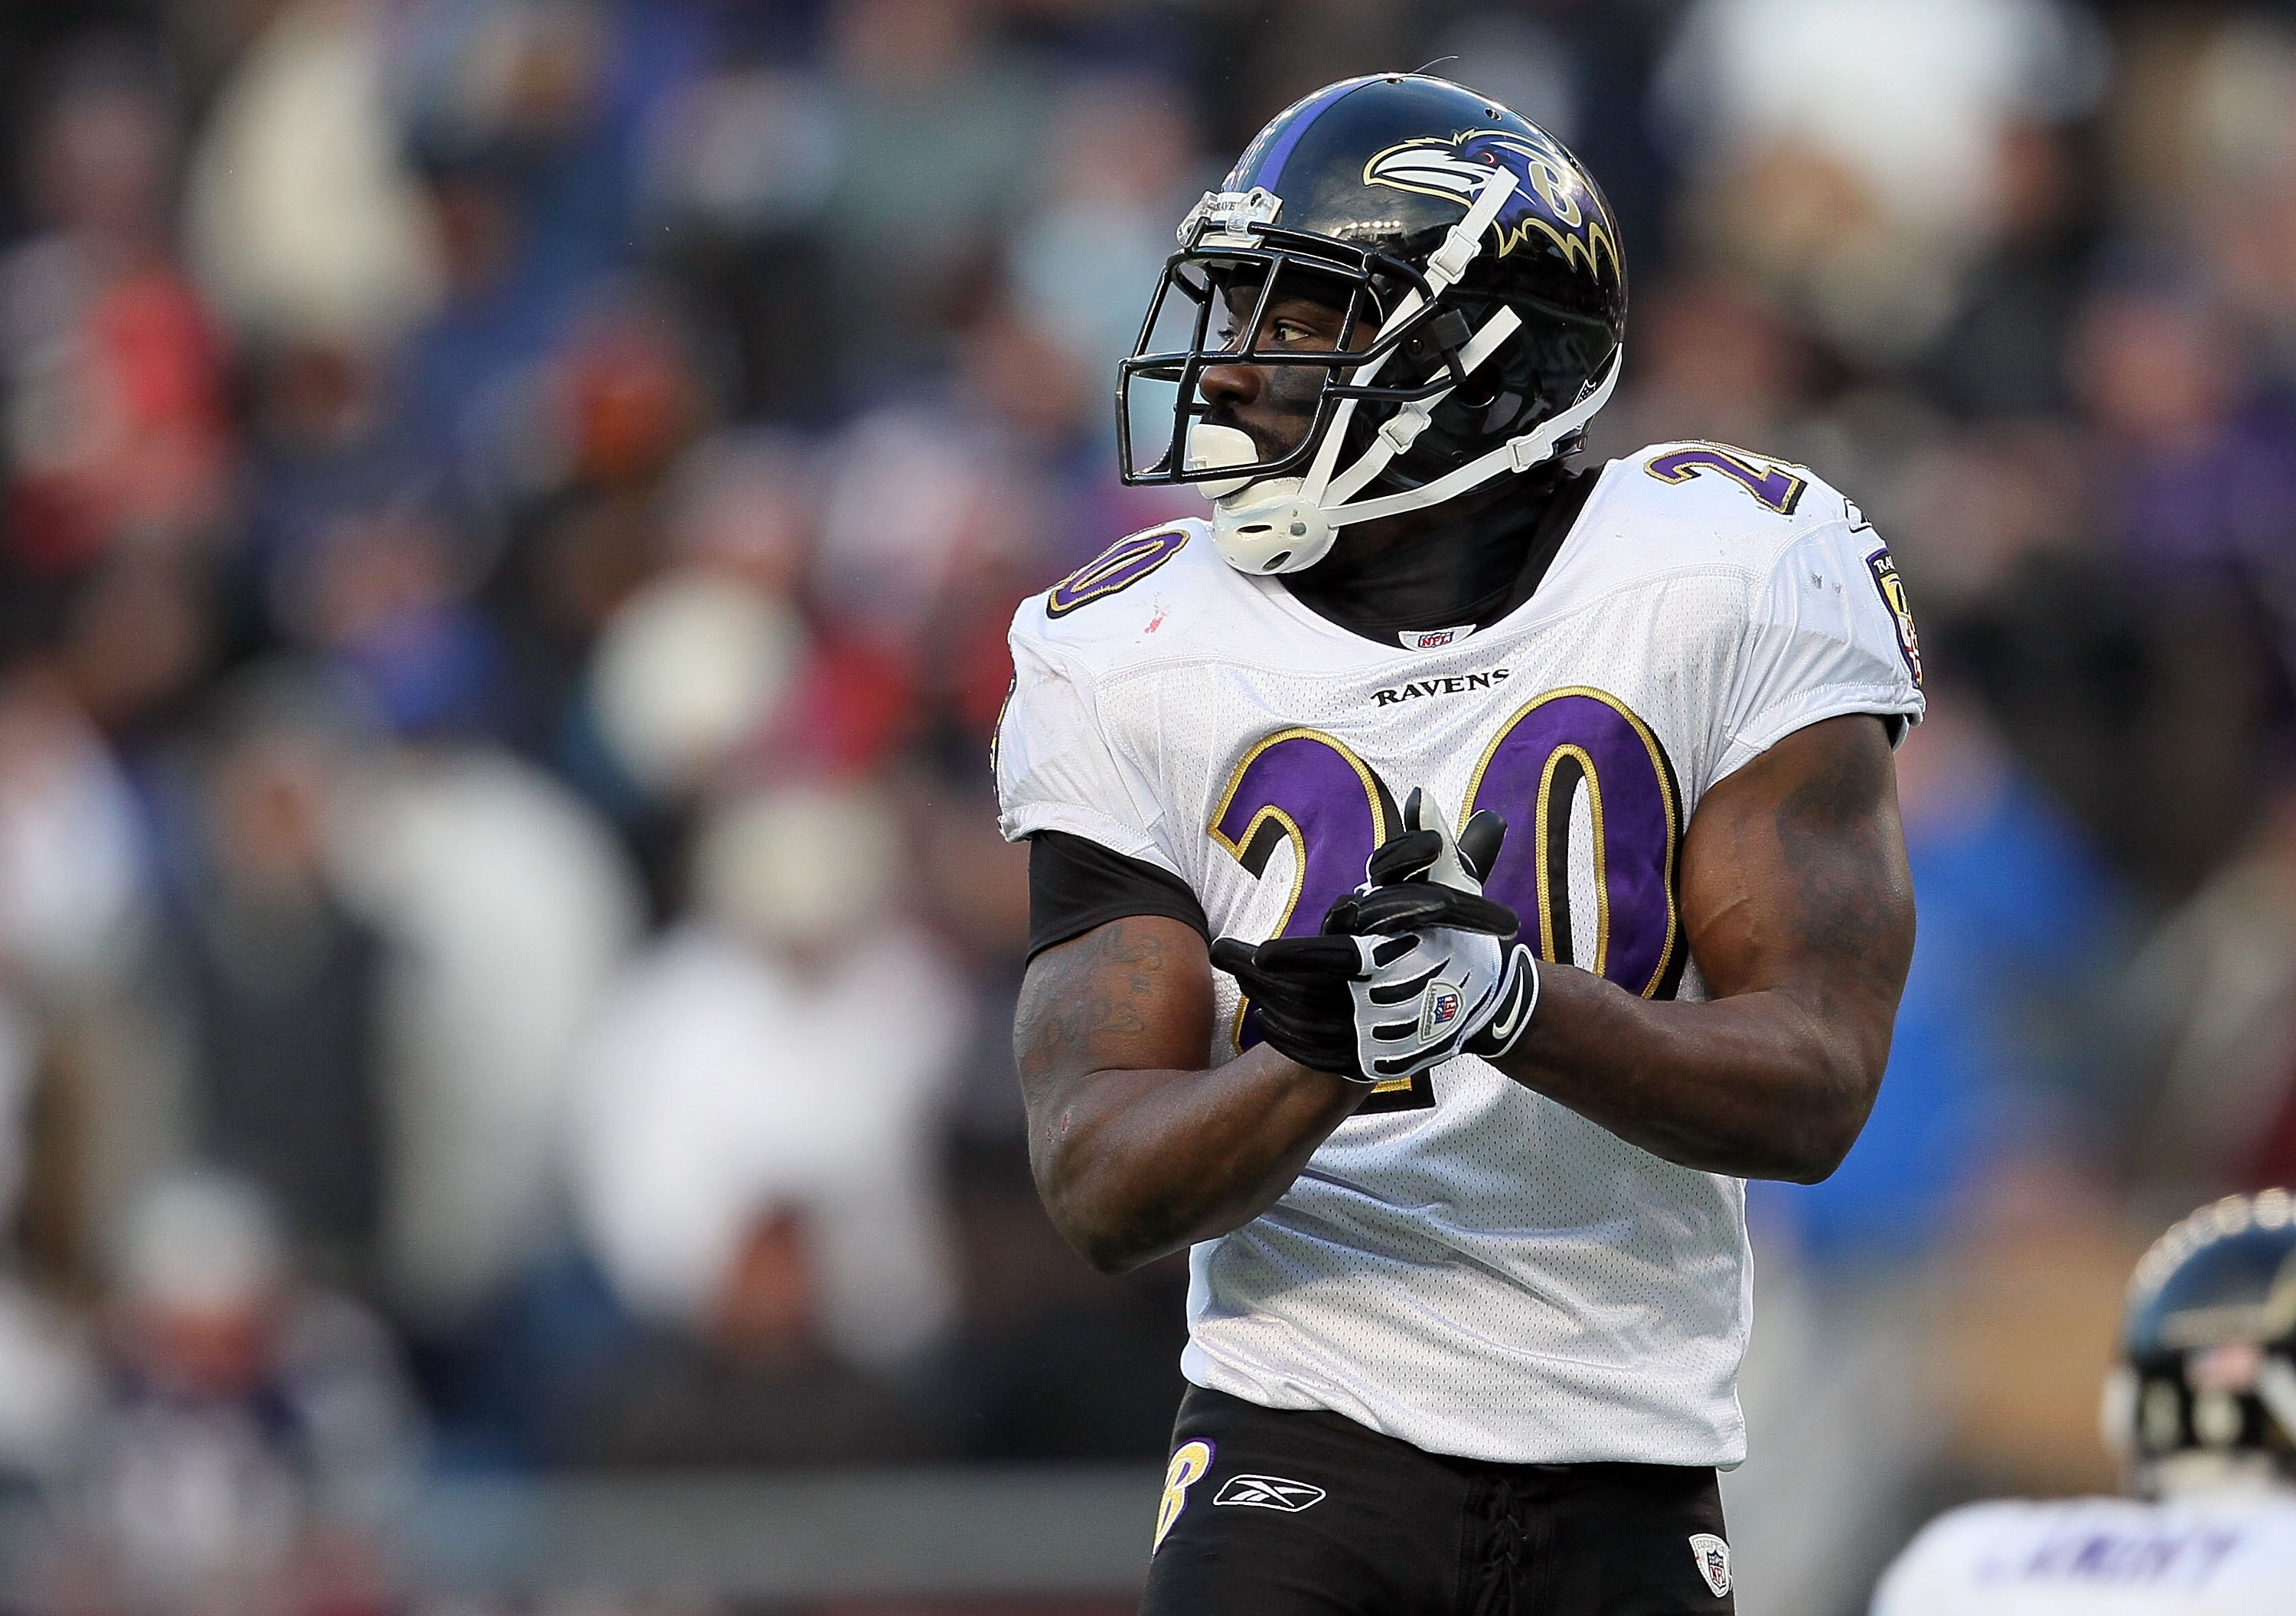 FOXBORO, MA - JANUARY 10:  Ed Reed #20 of the Baltimore Ravens looks on against the New England Patriots during the 2010 AFC wild-card playoff game at Gillette Stadium on January 10, 2010 in Foxboro, Massachusetts.  (Photo by Jim Rogash/Getty Images)